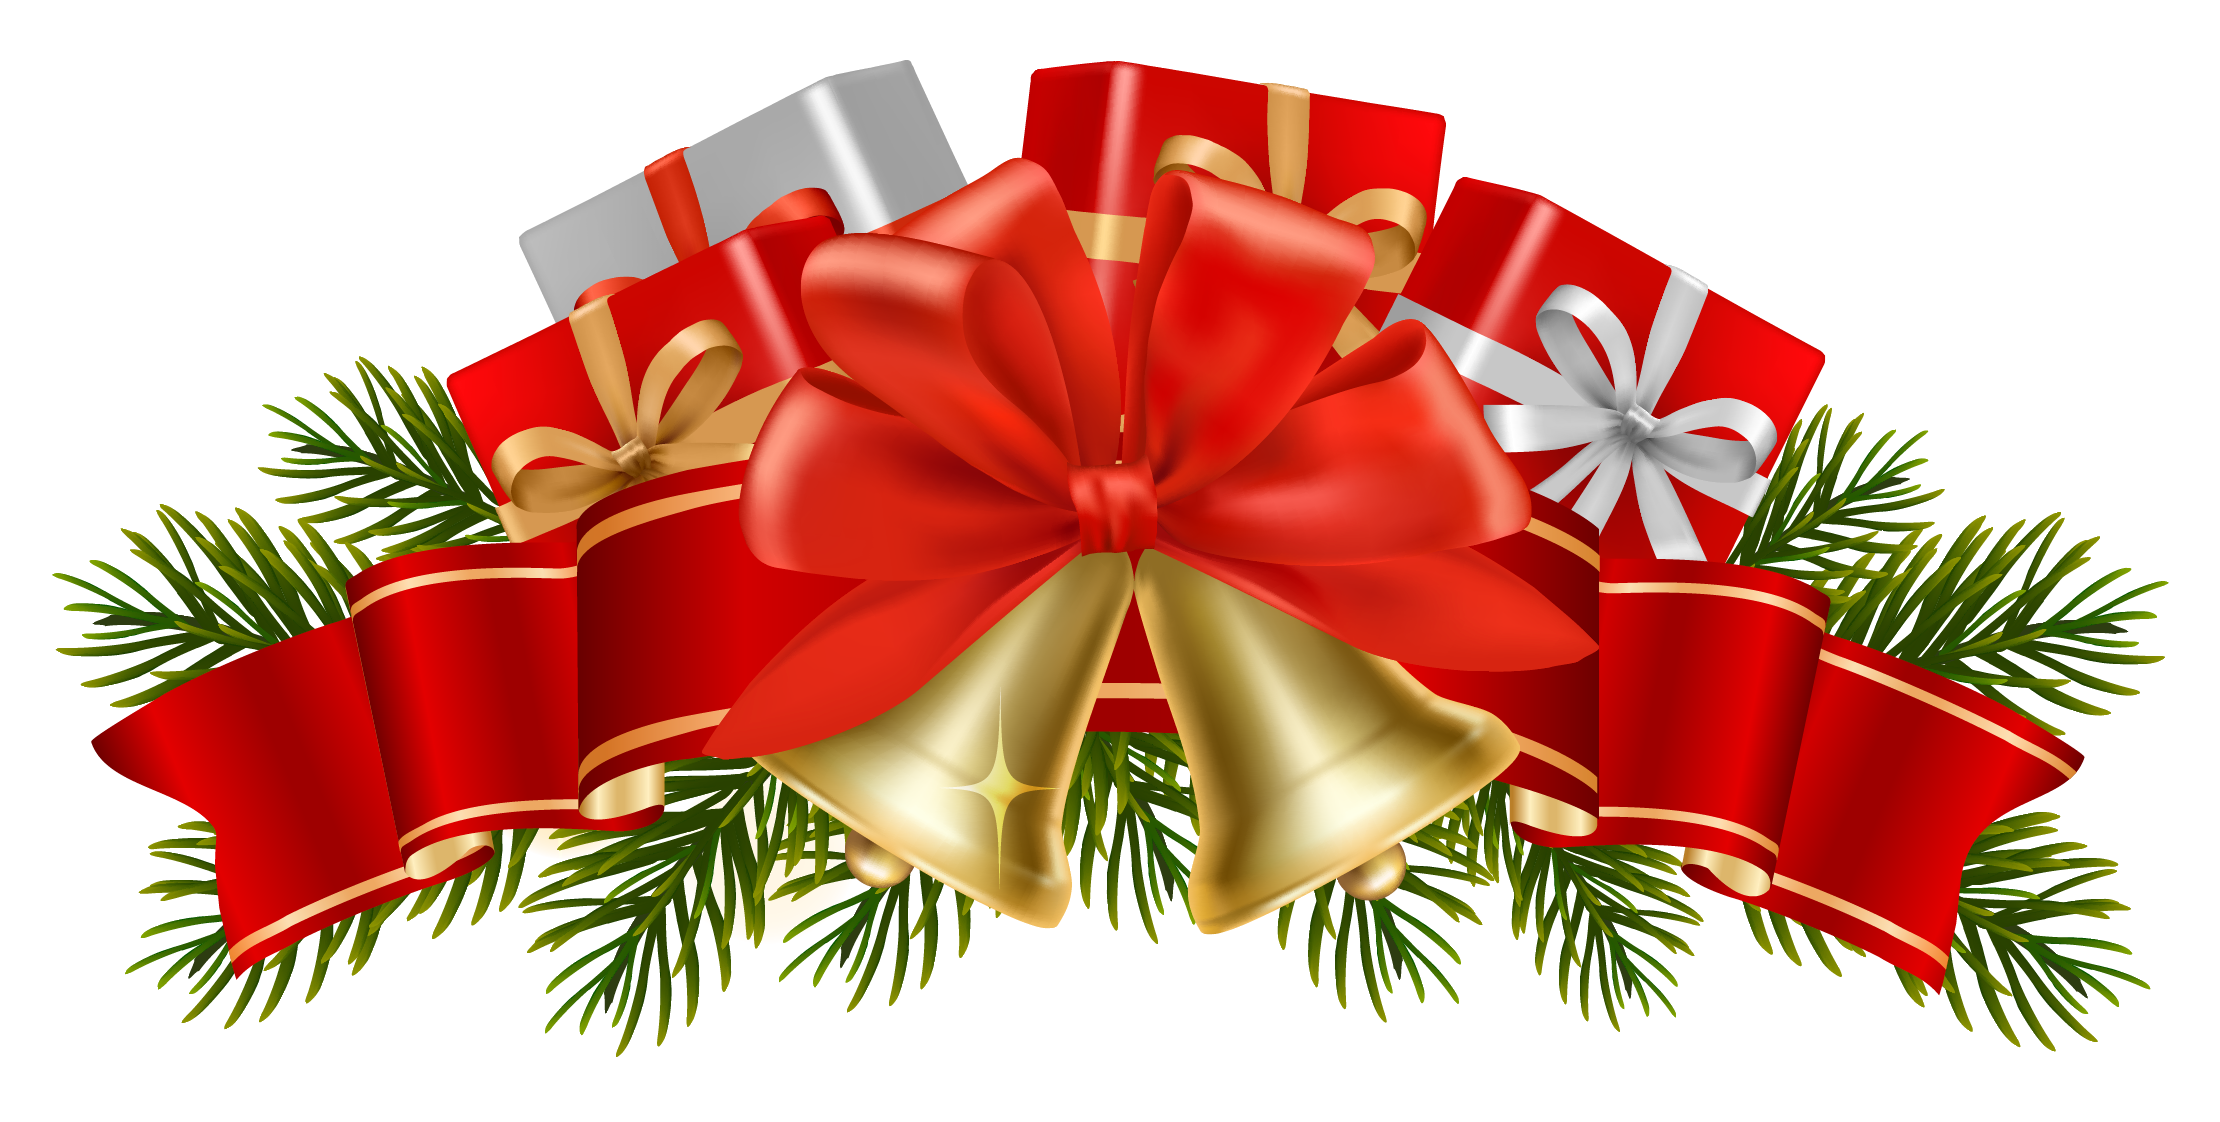 Free Transparent Christmas Cliparts, Download Free Clip Art